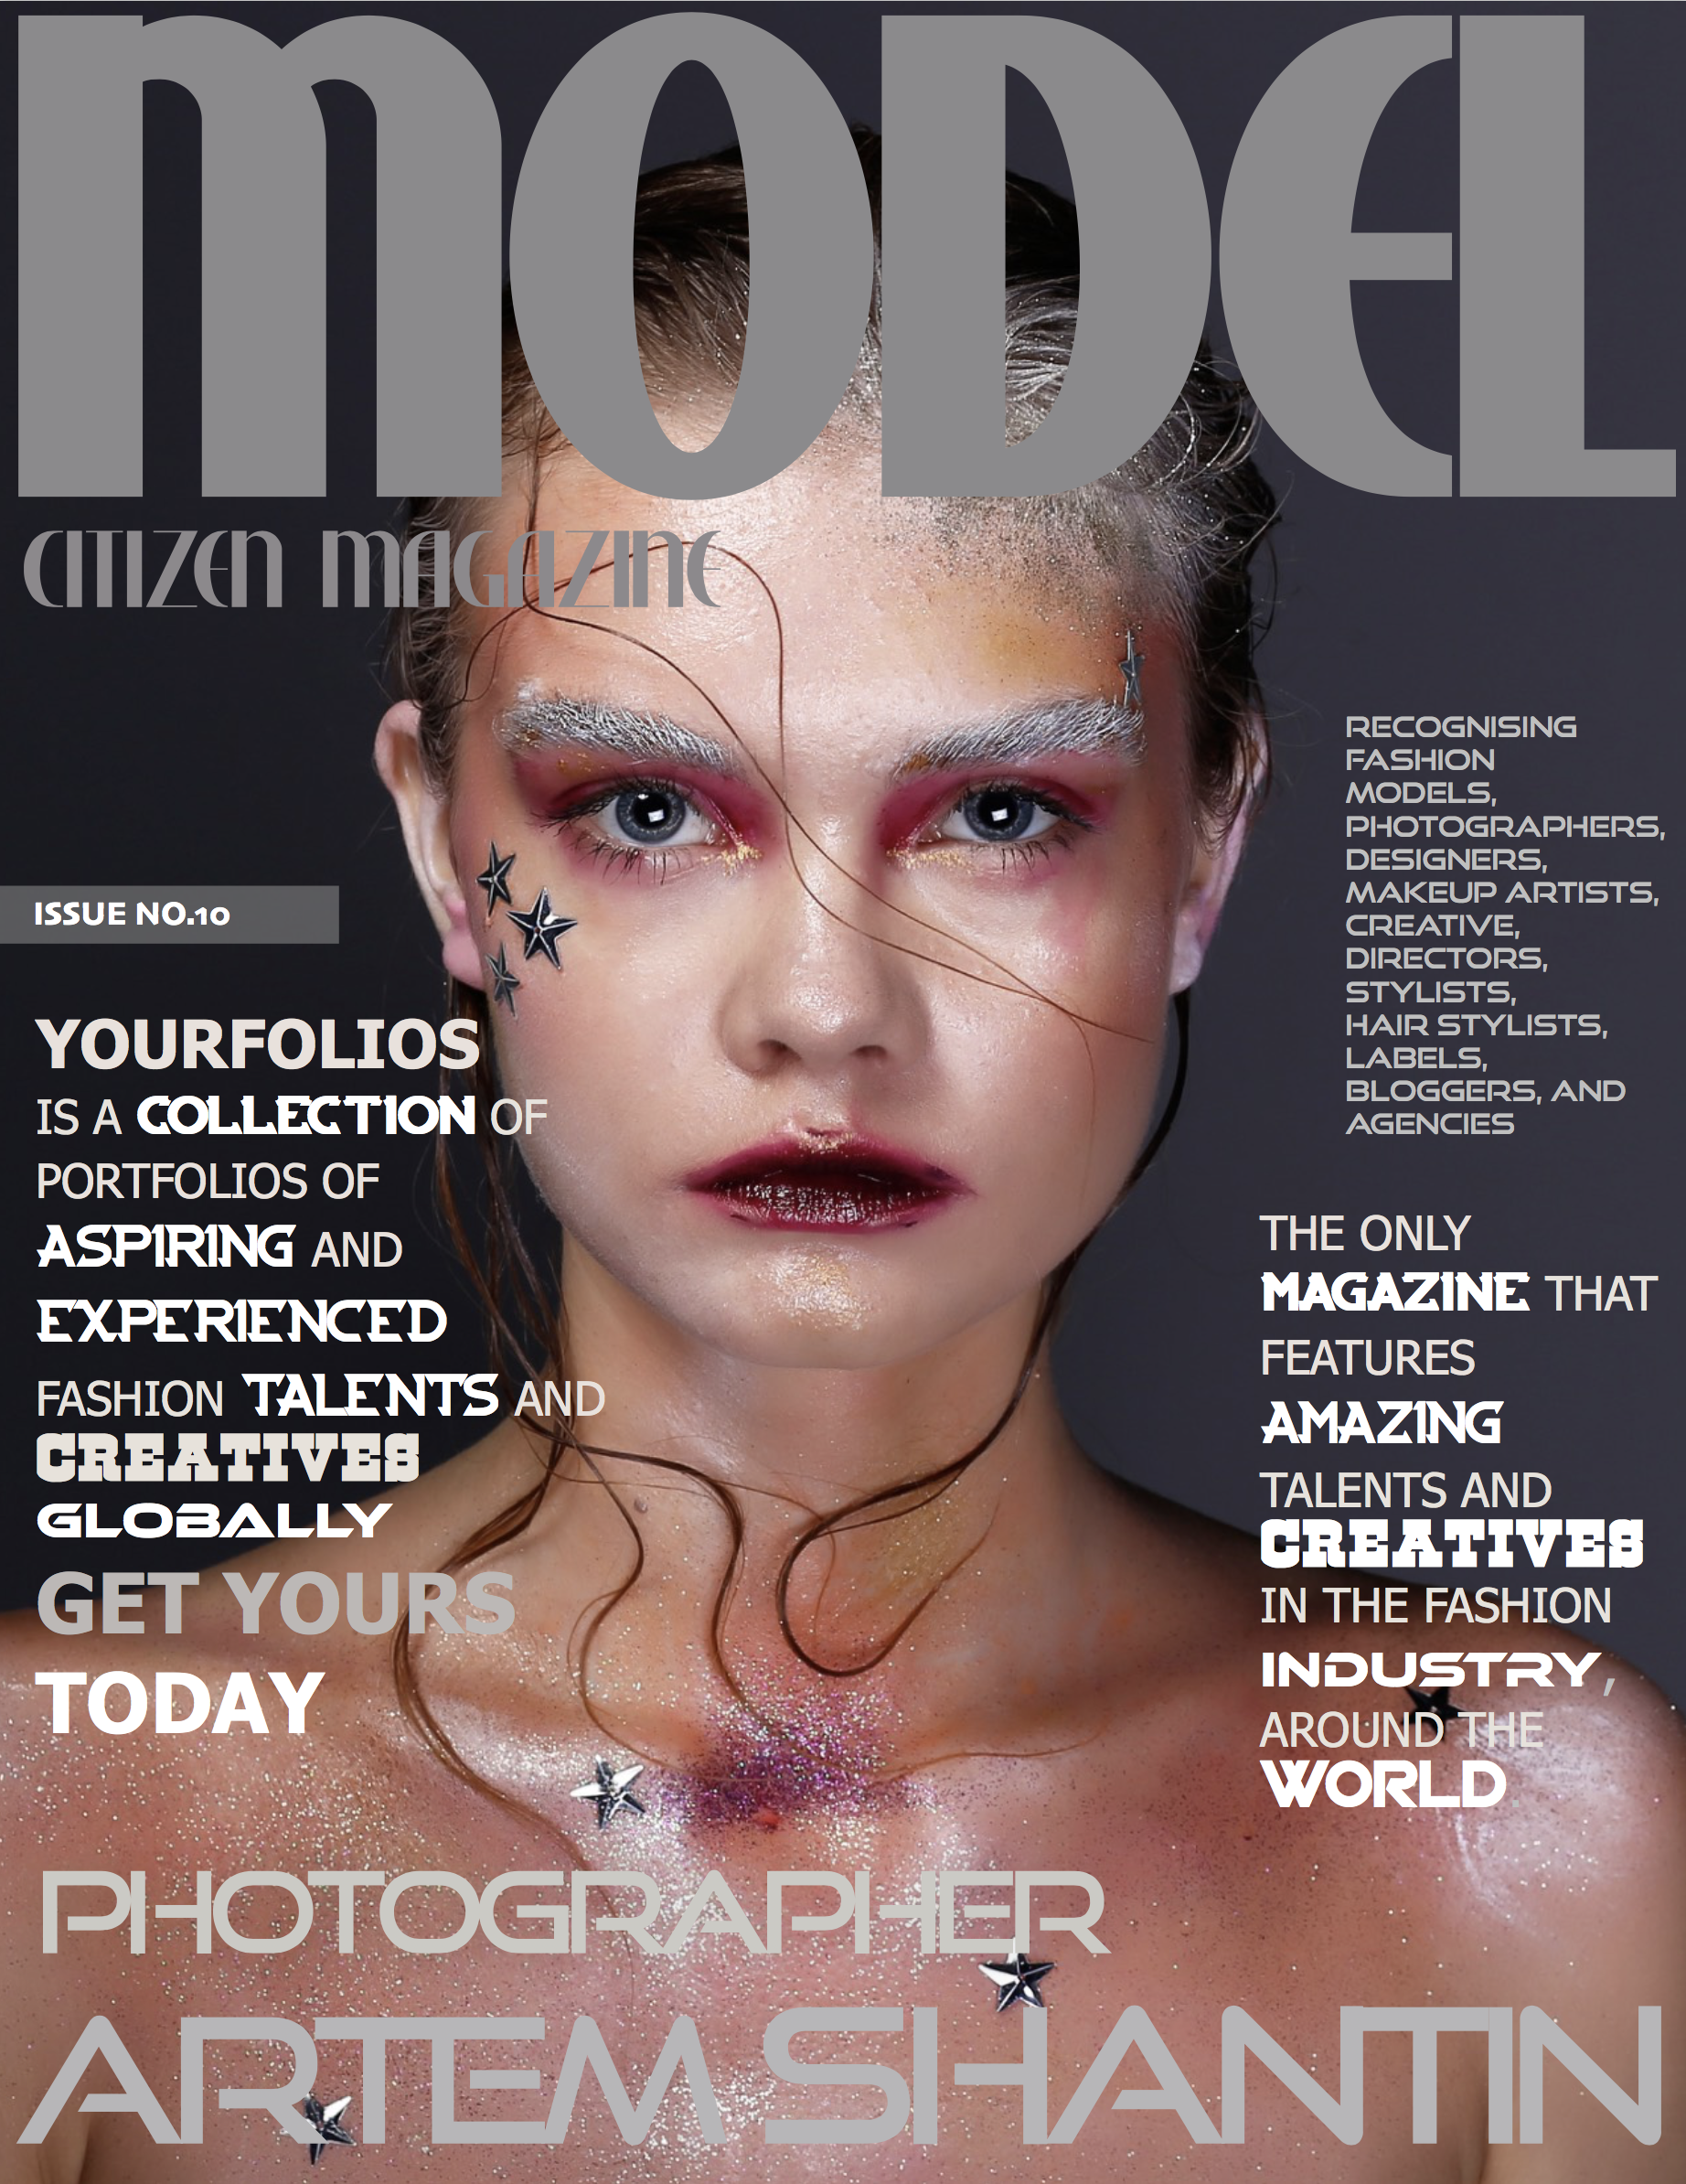 Copy of Recognizing fashion talents, brands and creatives globally. Be featured in Model Citizen Magazine, App and Blogs now.